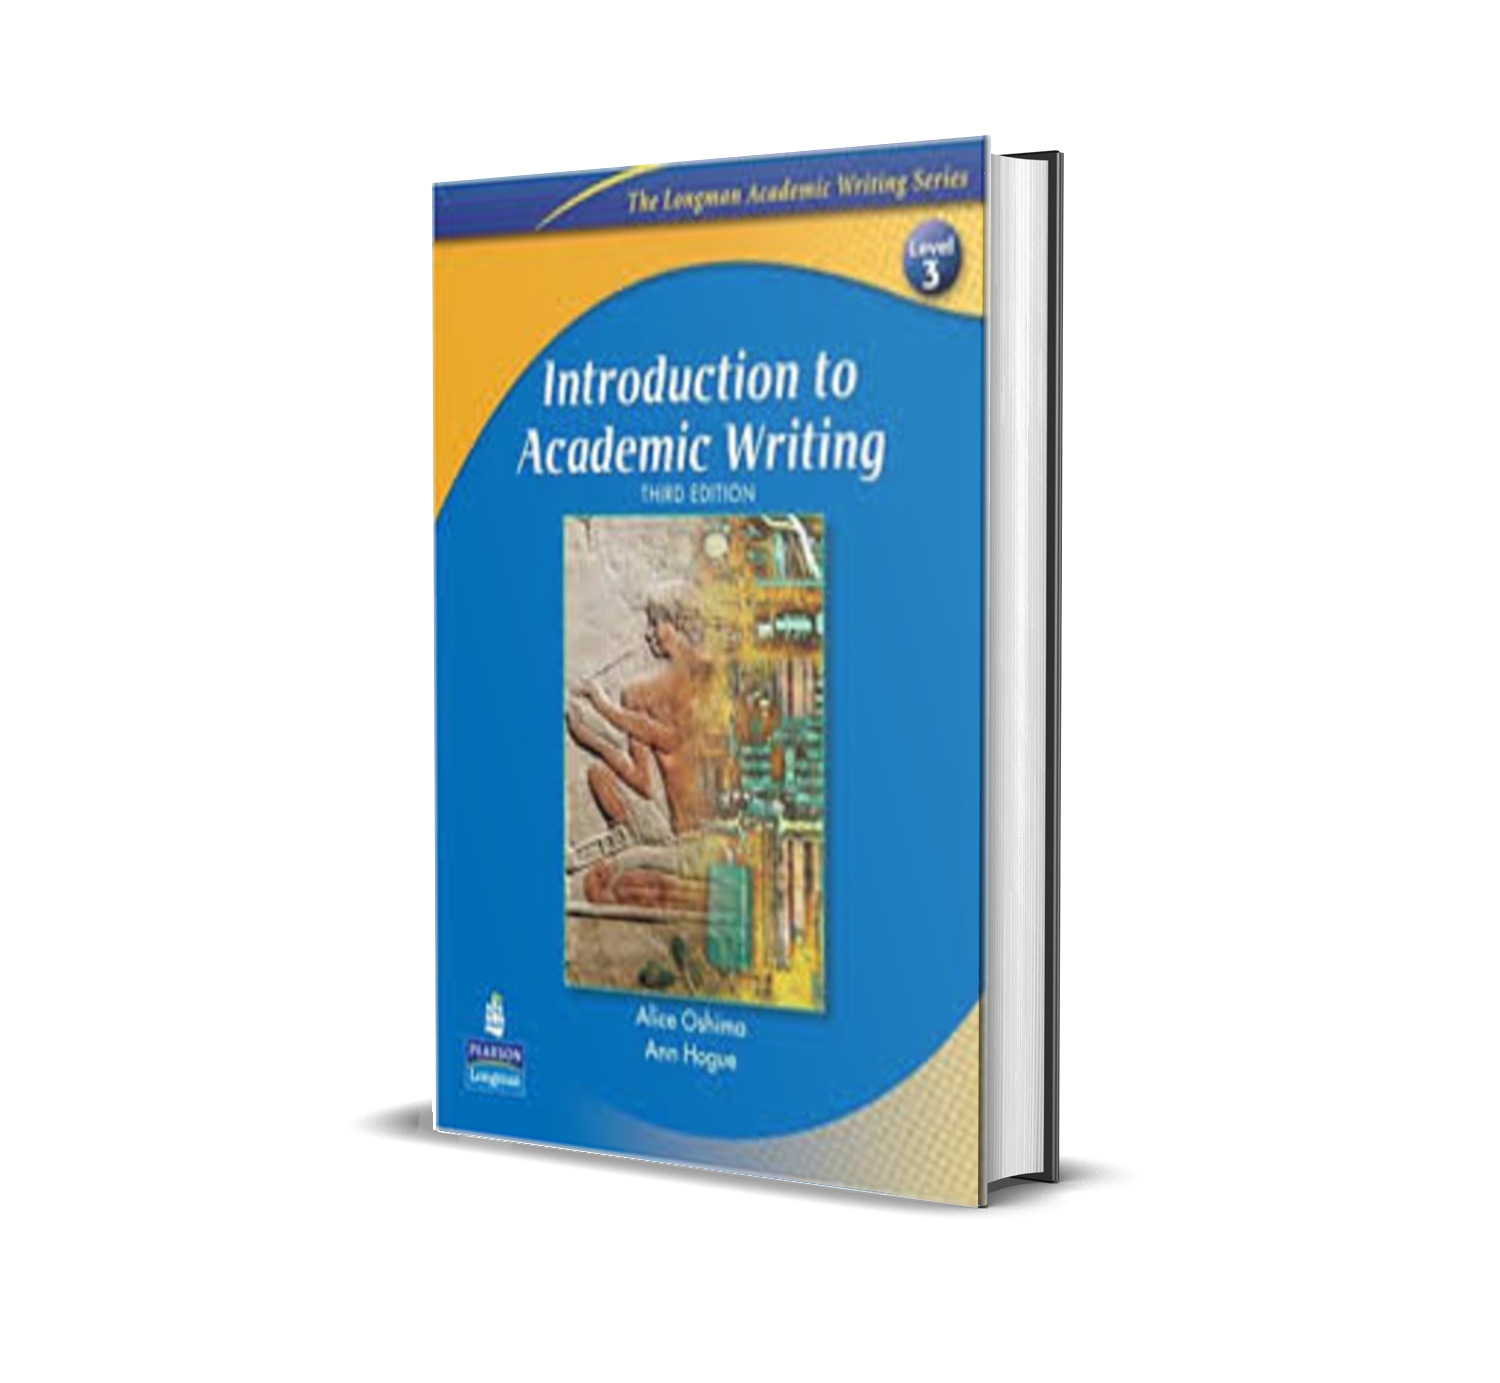 Introduction to Academic Writing, Third Edition - Alice Oshima, Ann Hogue